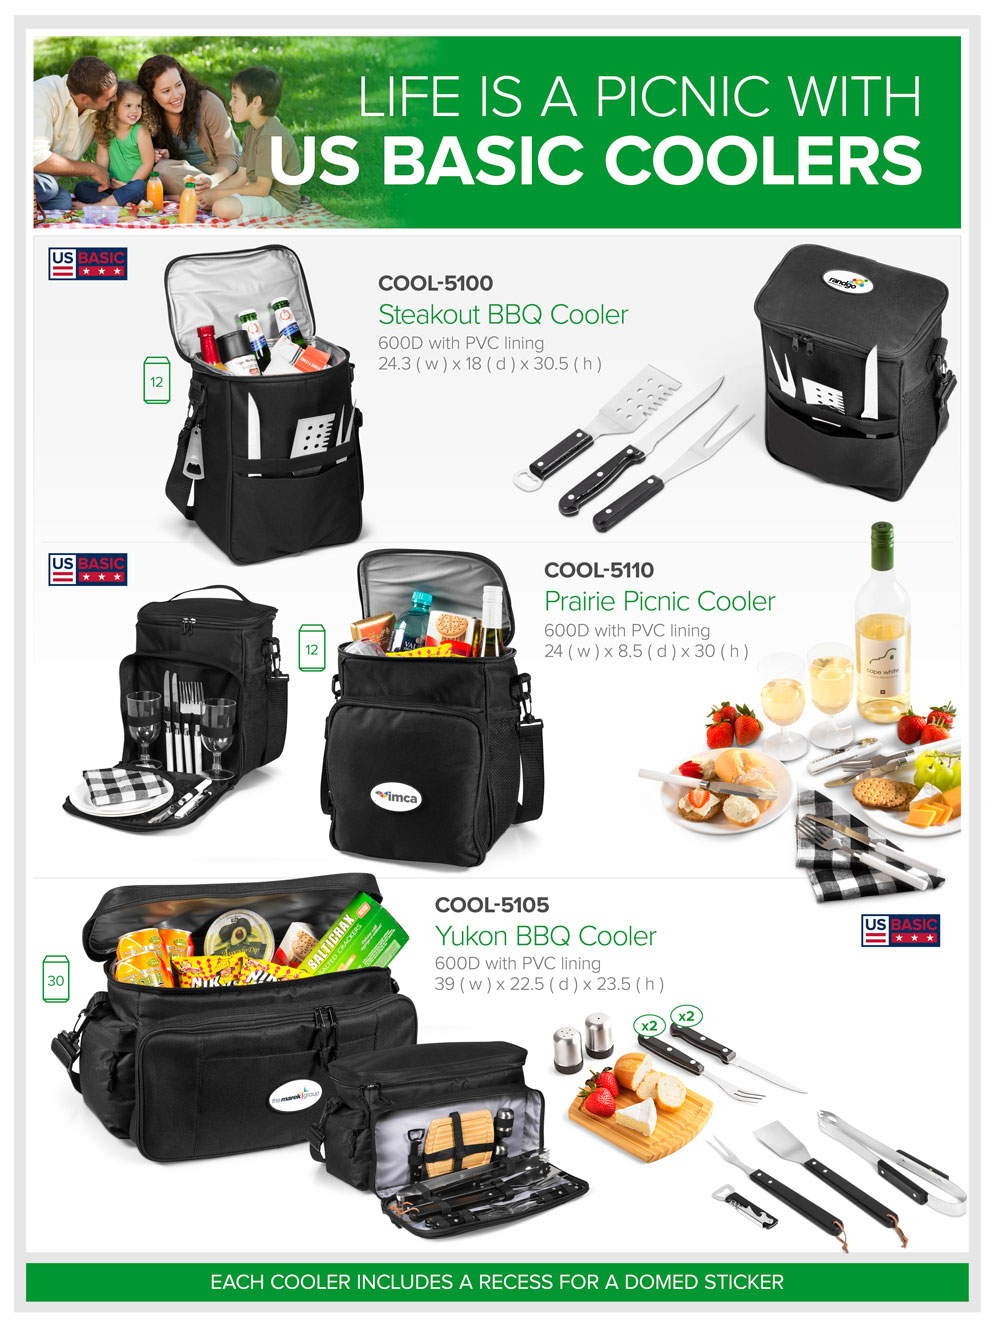 US Basic Cooler Bags